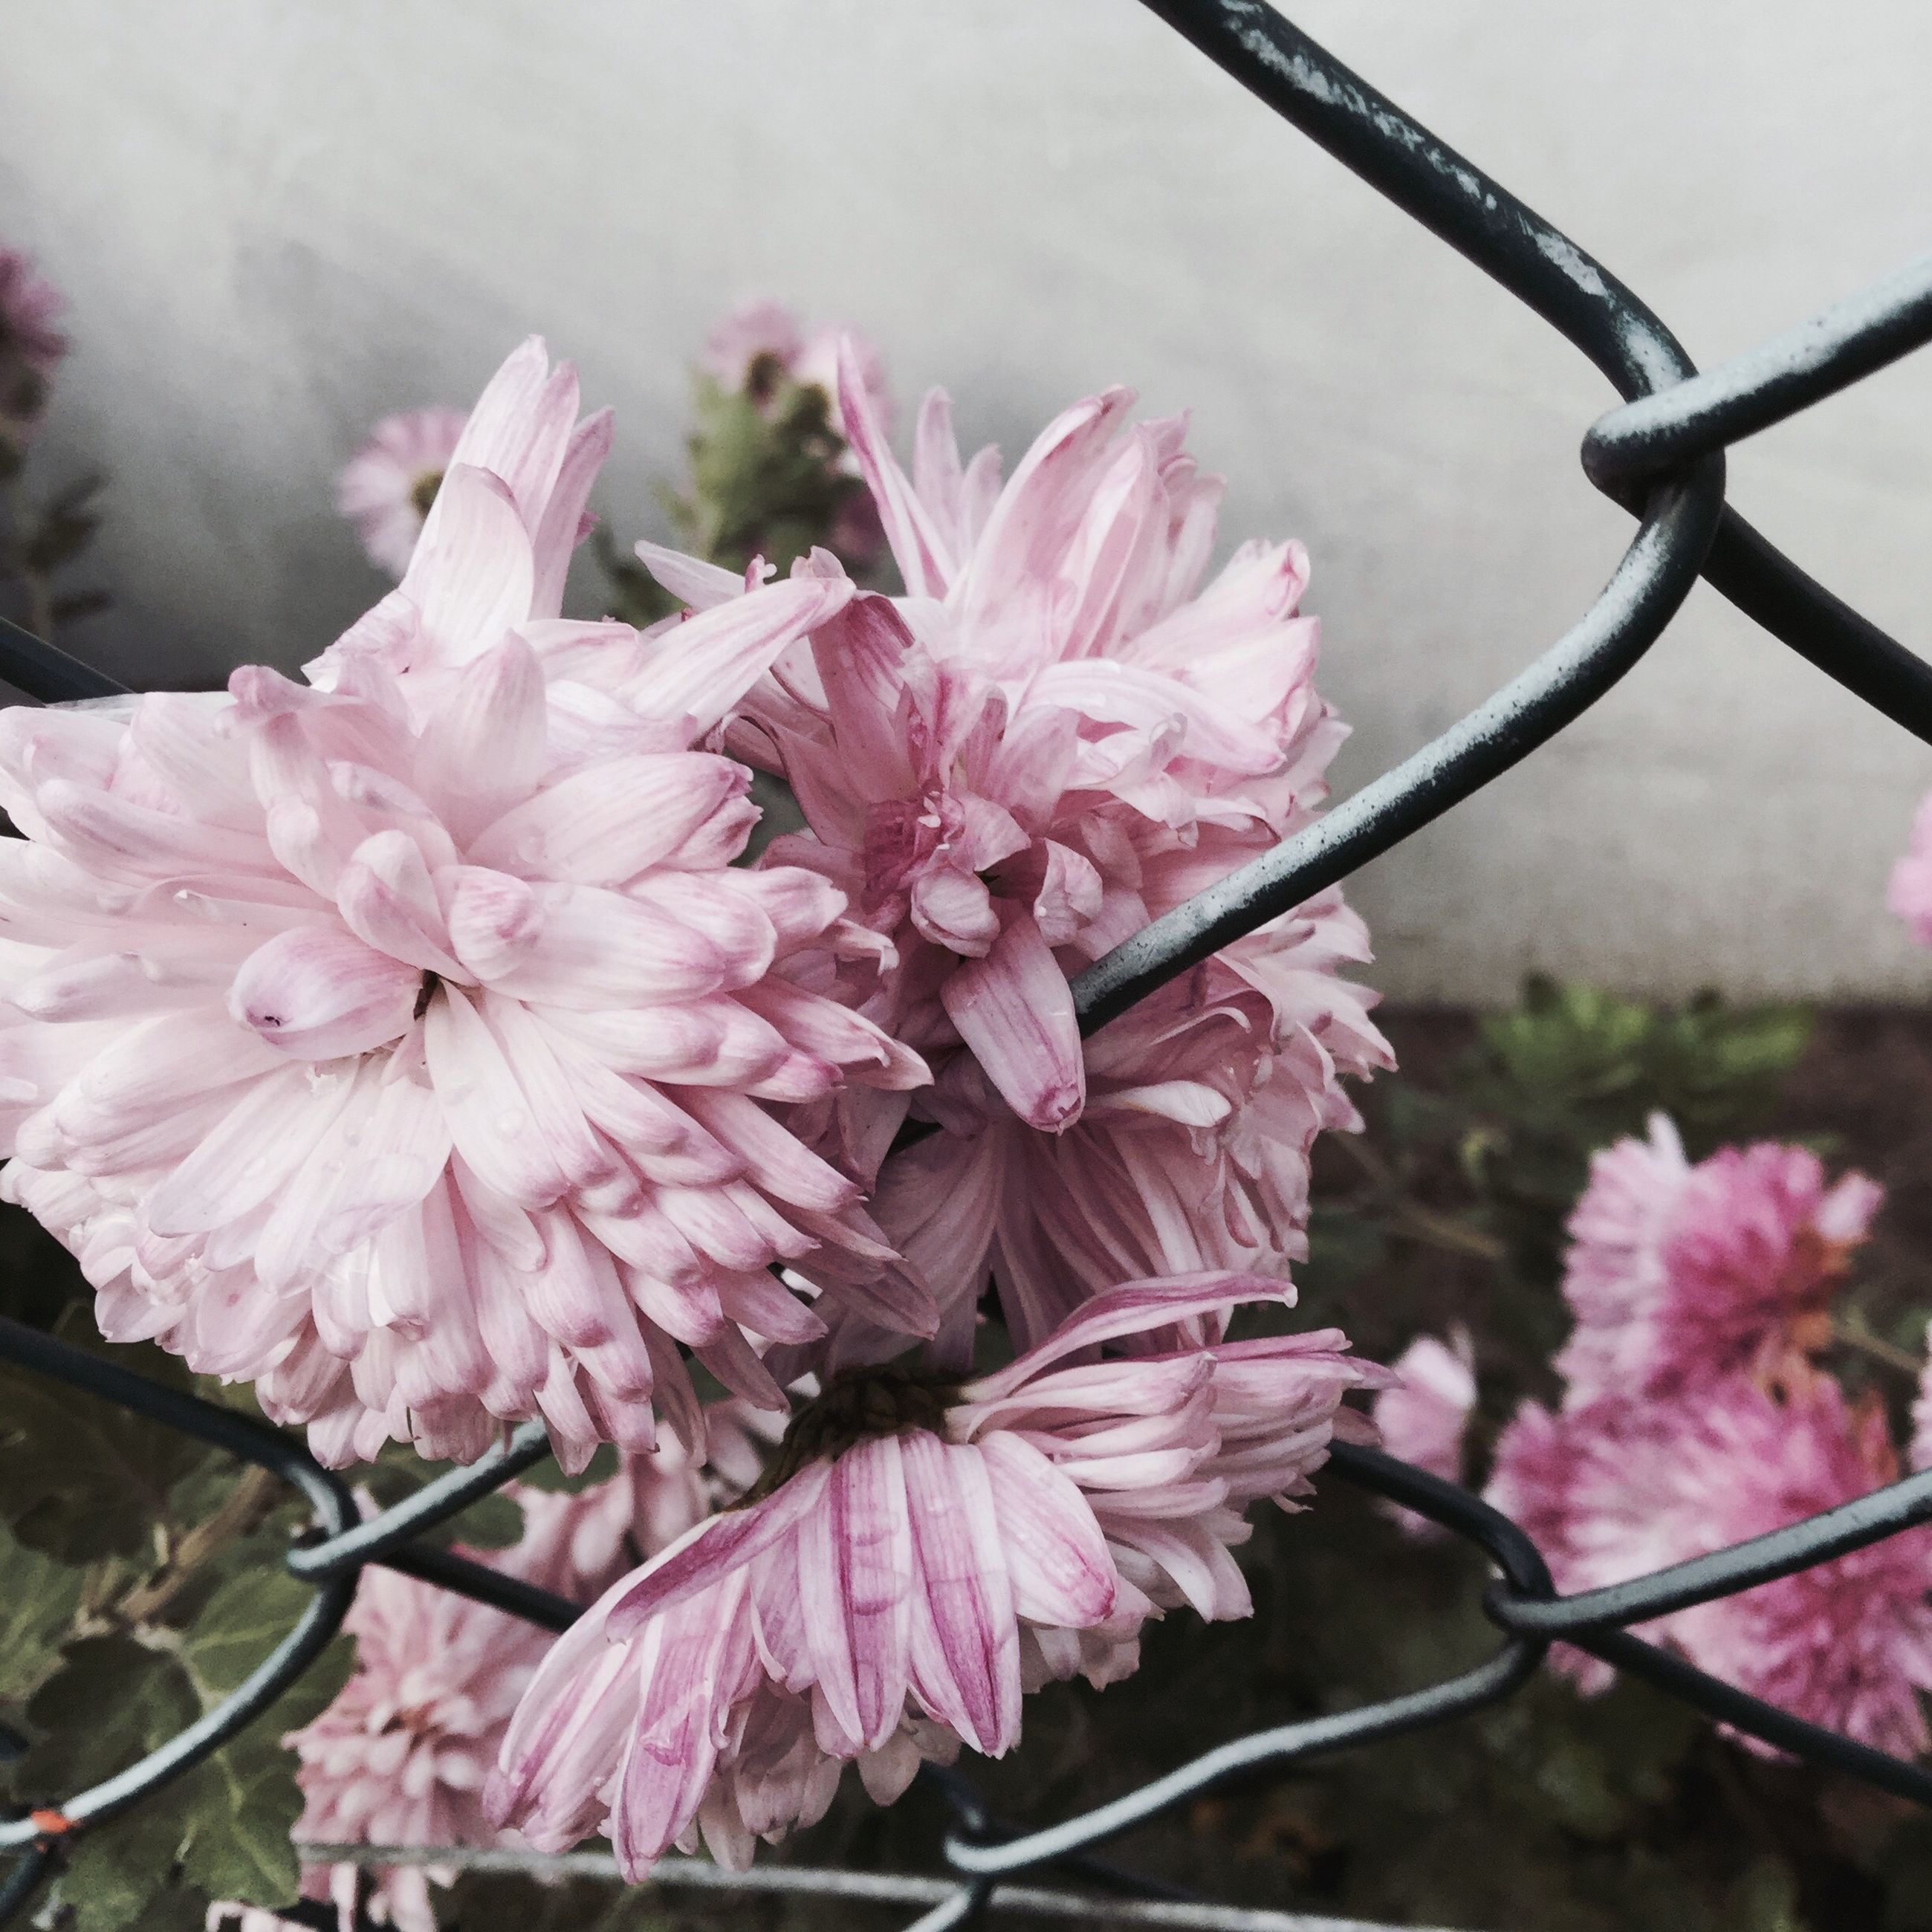 flower, freshness, fragility, pink color, petal, growth, beauty in nature, close-up, focus on foreground, nature, flower head, blooming, plant, blossom, in bloom, branch, day, twig, springtime, outdoors